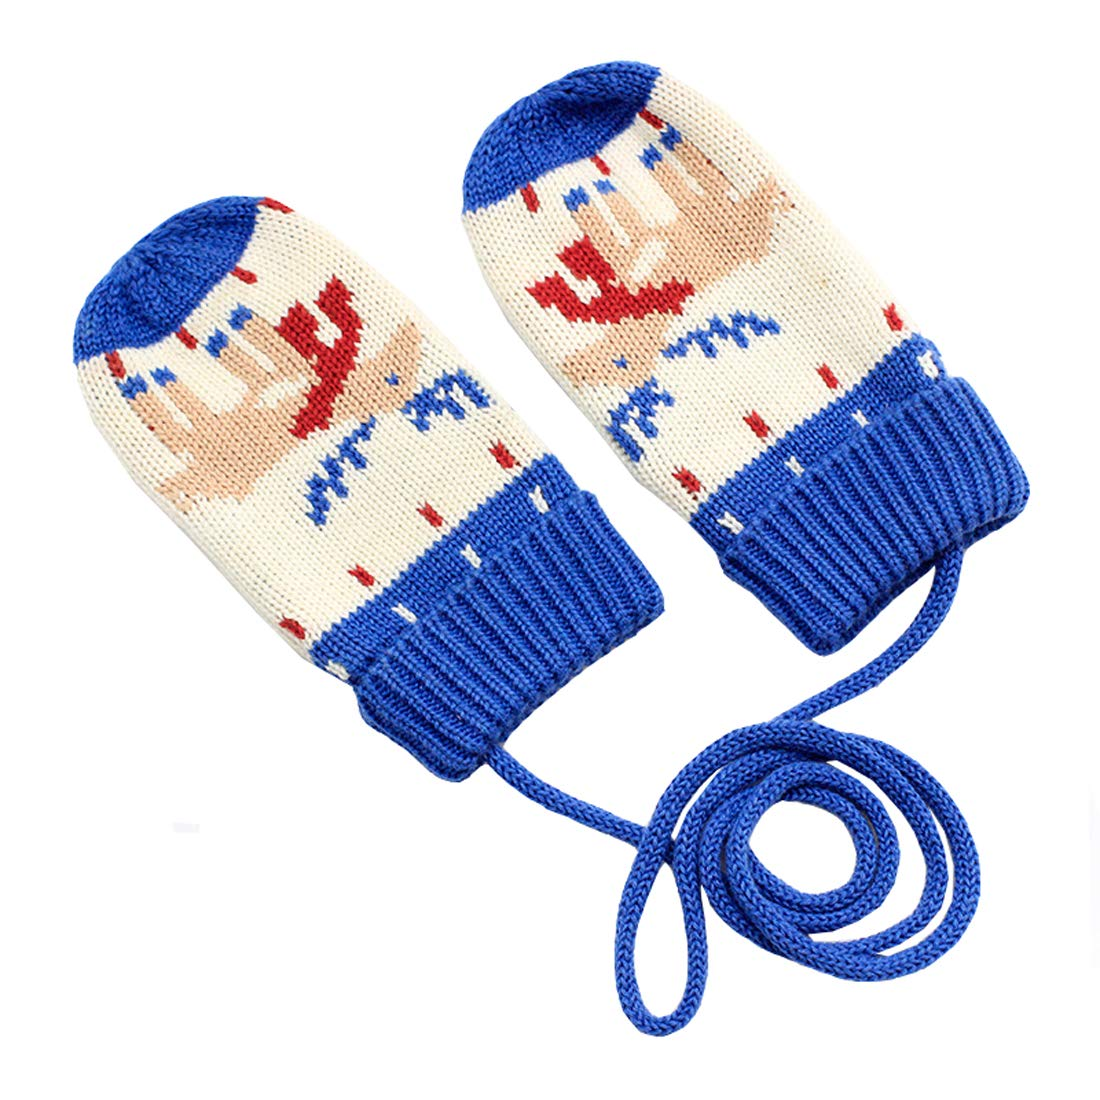 ACVIP Little Boys Knit Cartton Octpus Stringed Cold Weather Mittens